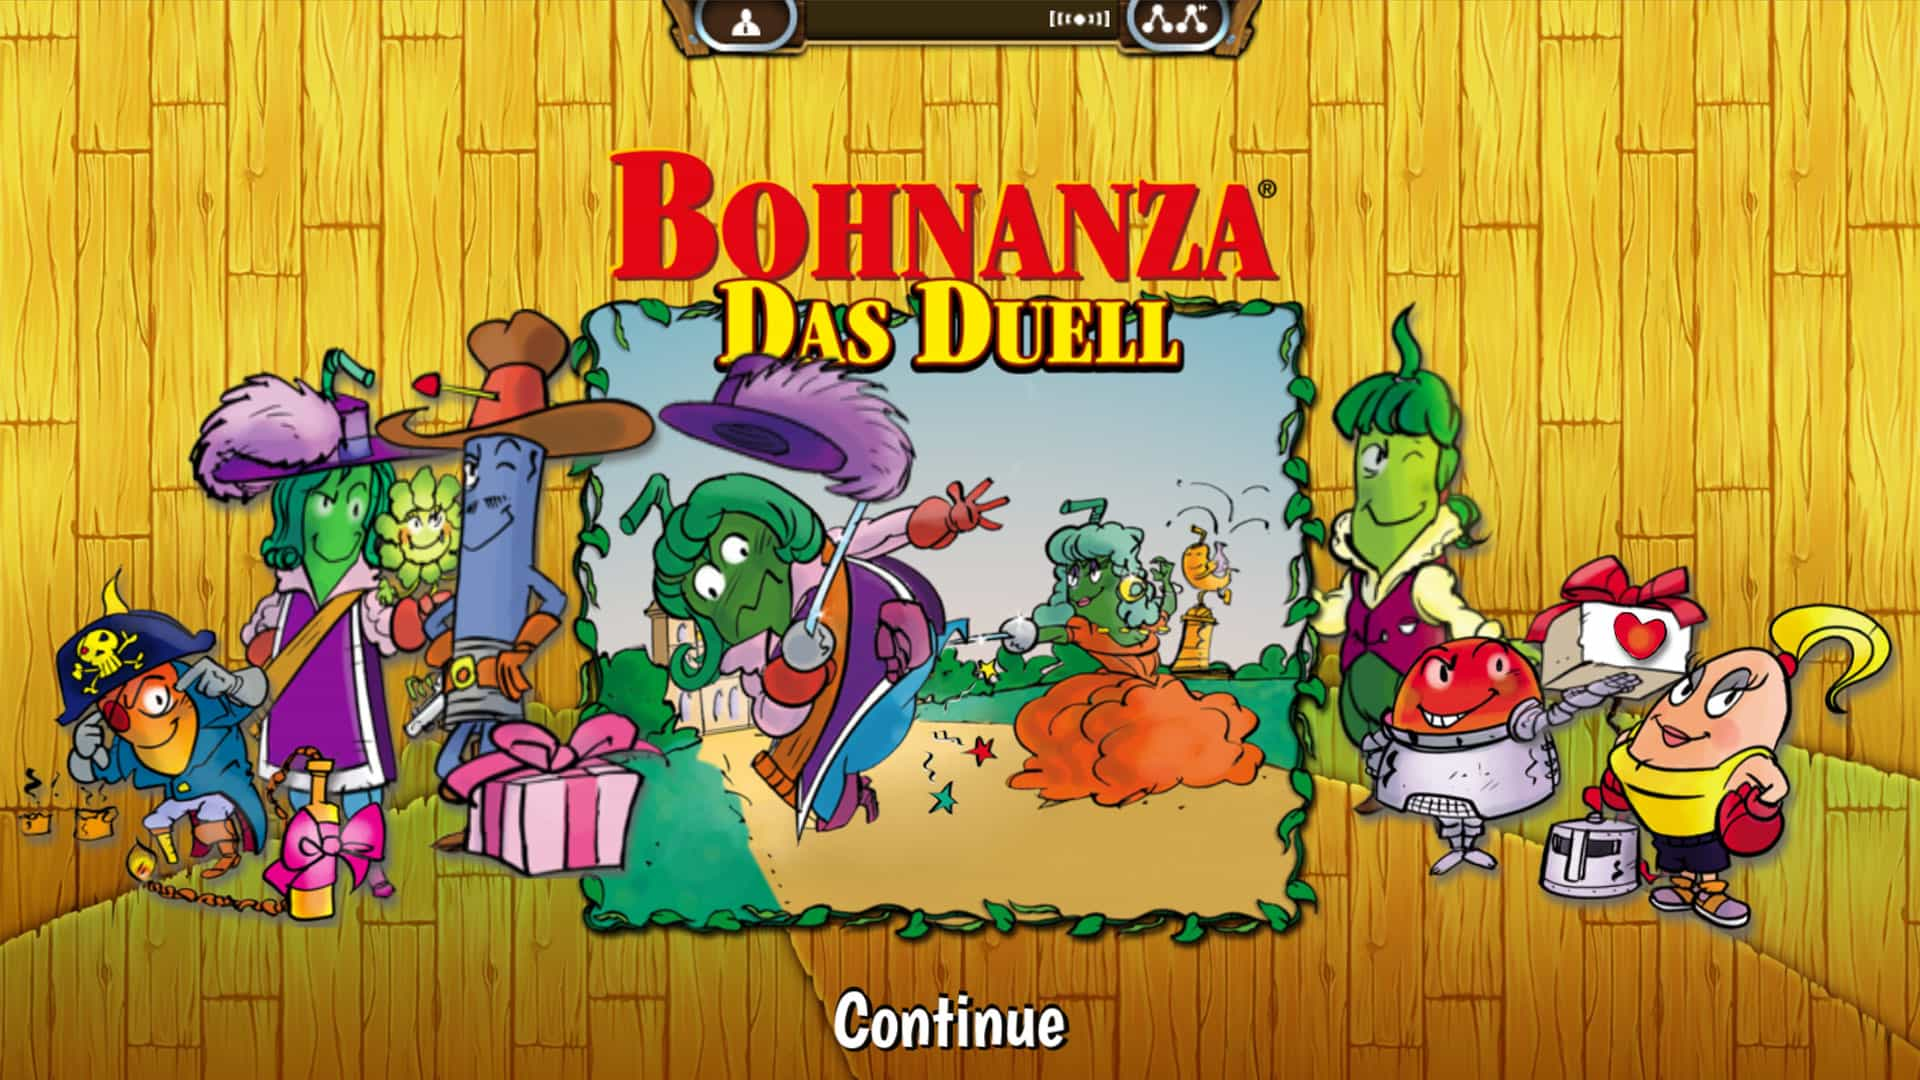 Bohnanza The Duel Splashscreen (2 player card game)